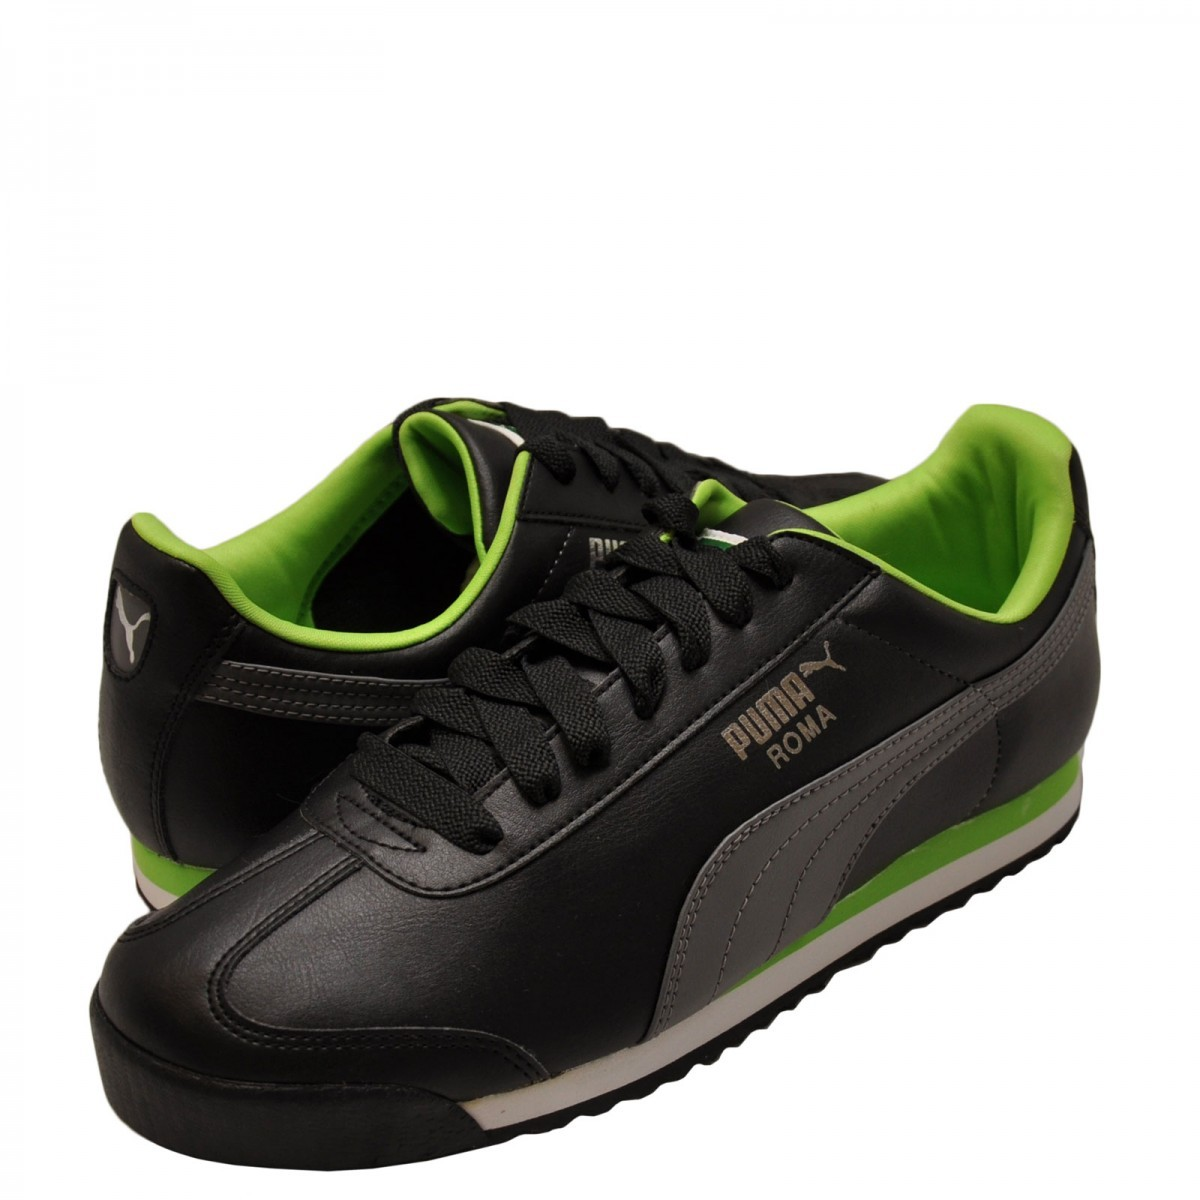 puma roma basic men s sneaker review december 2017. Black Bedroom Furniture Sets. Home Design Ideas